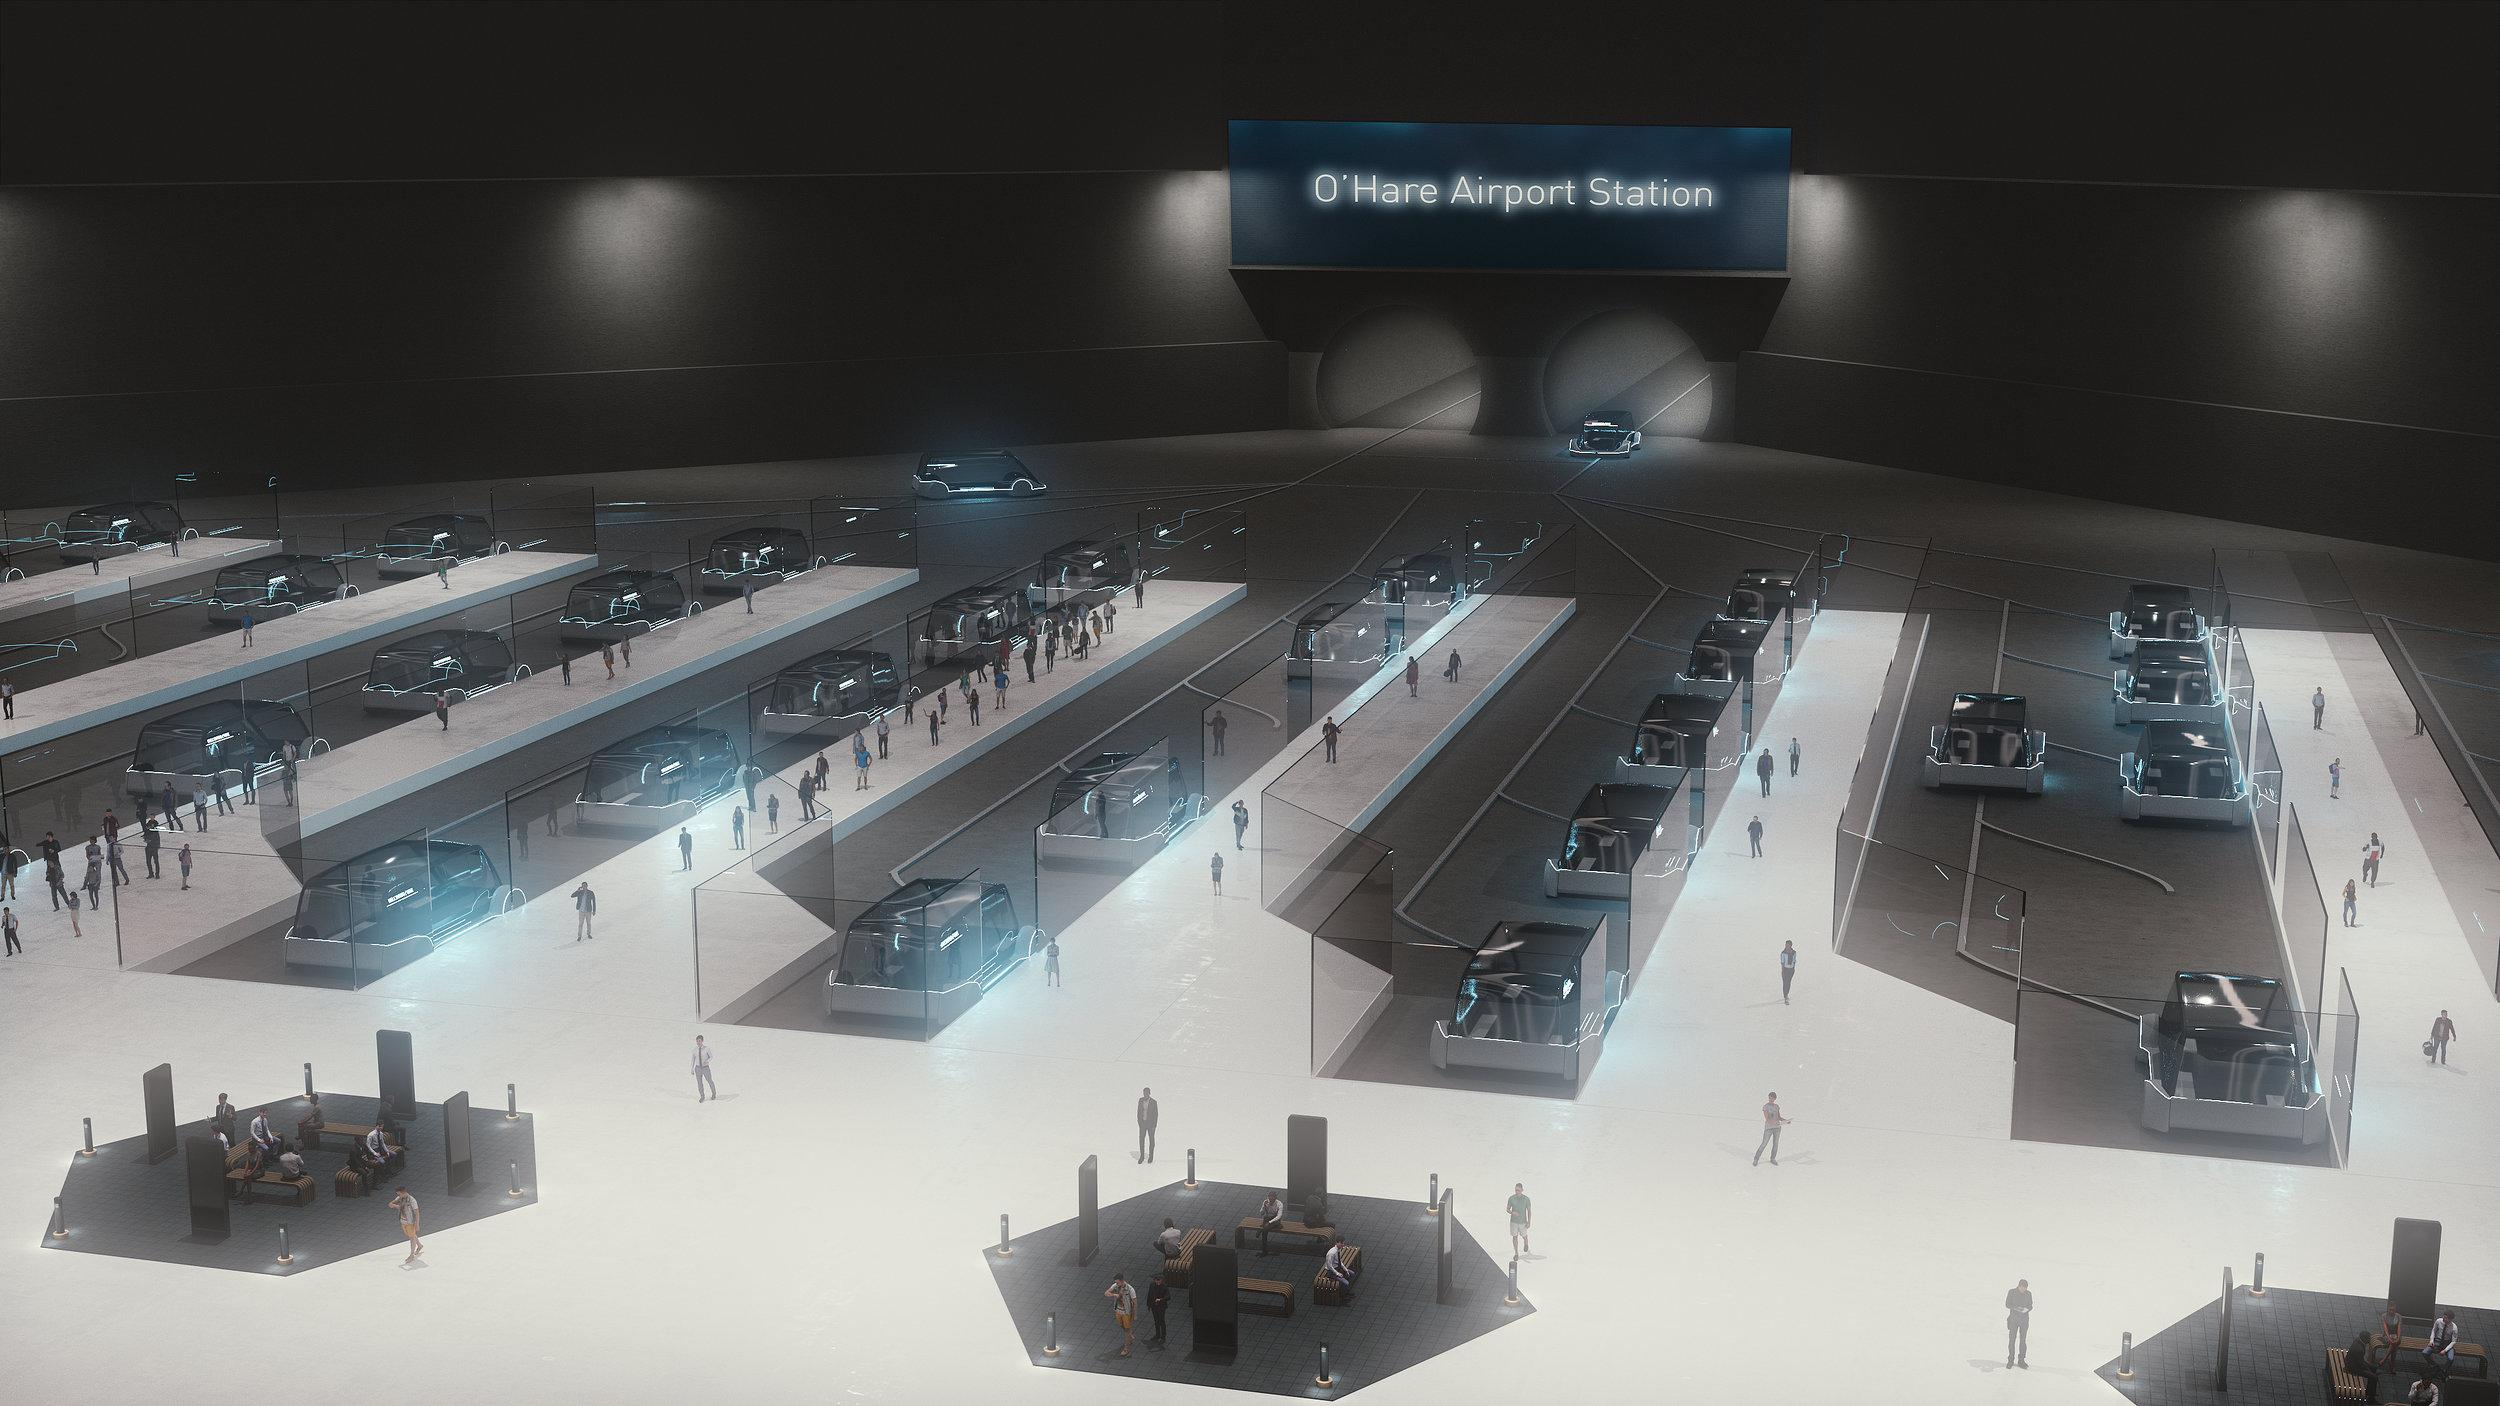 A rendering of a high-speed train station (Credit: The Boring Company)